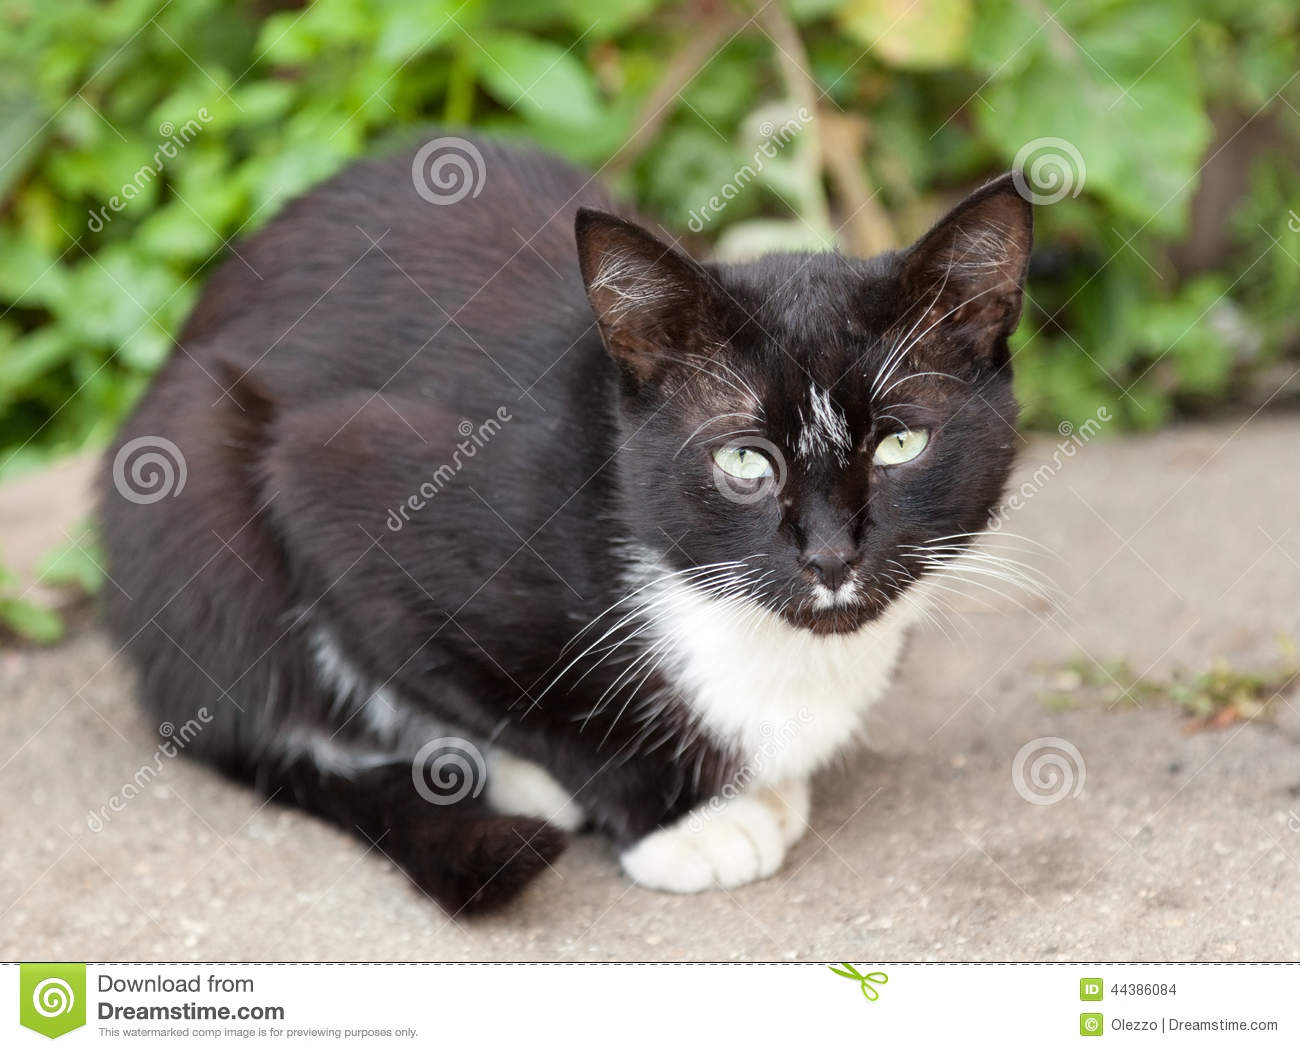 Funny Black Cat Pictures 28 Free Wallpaper